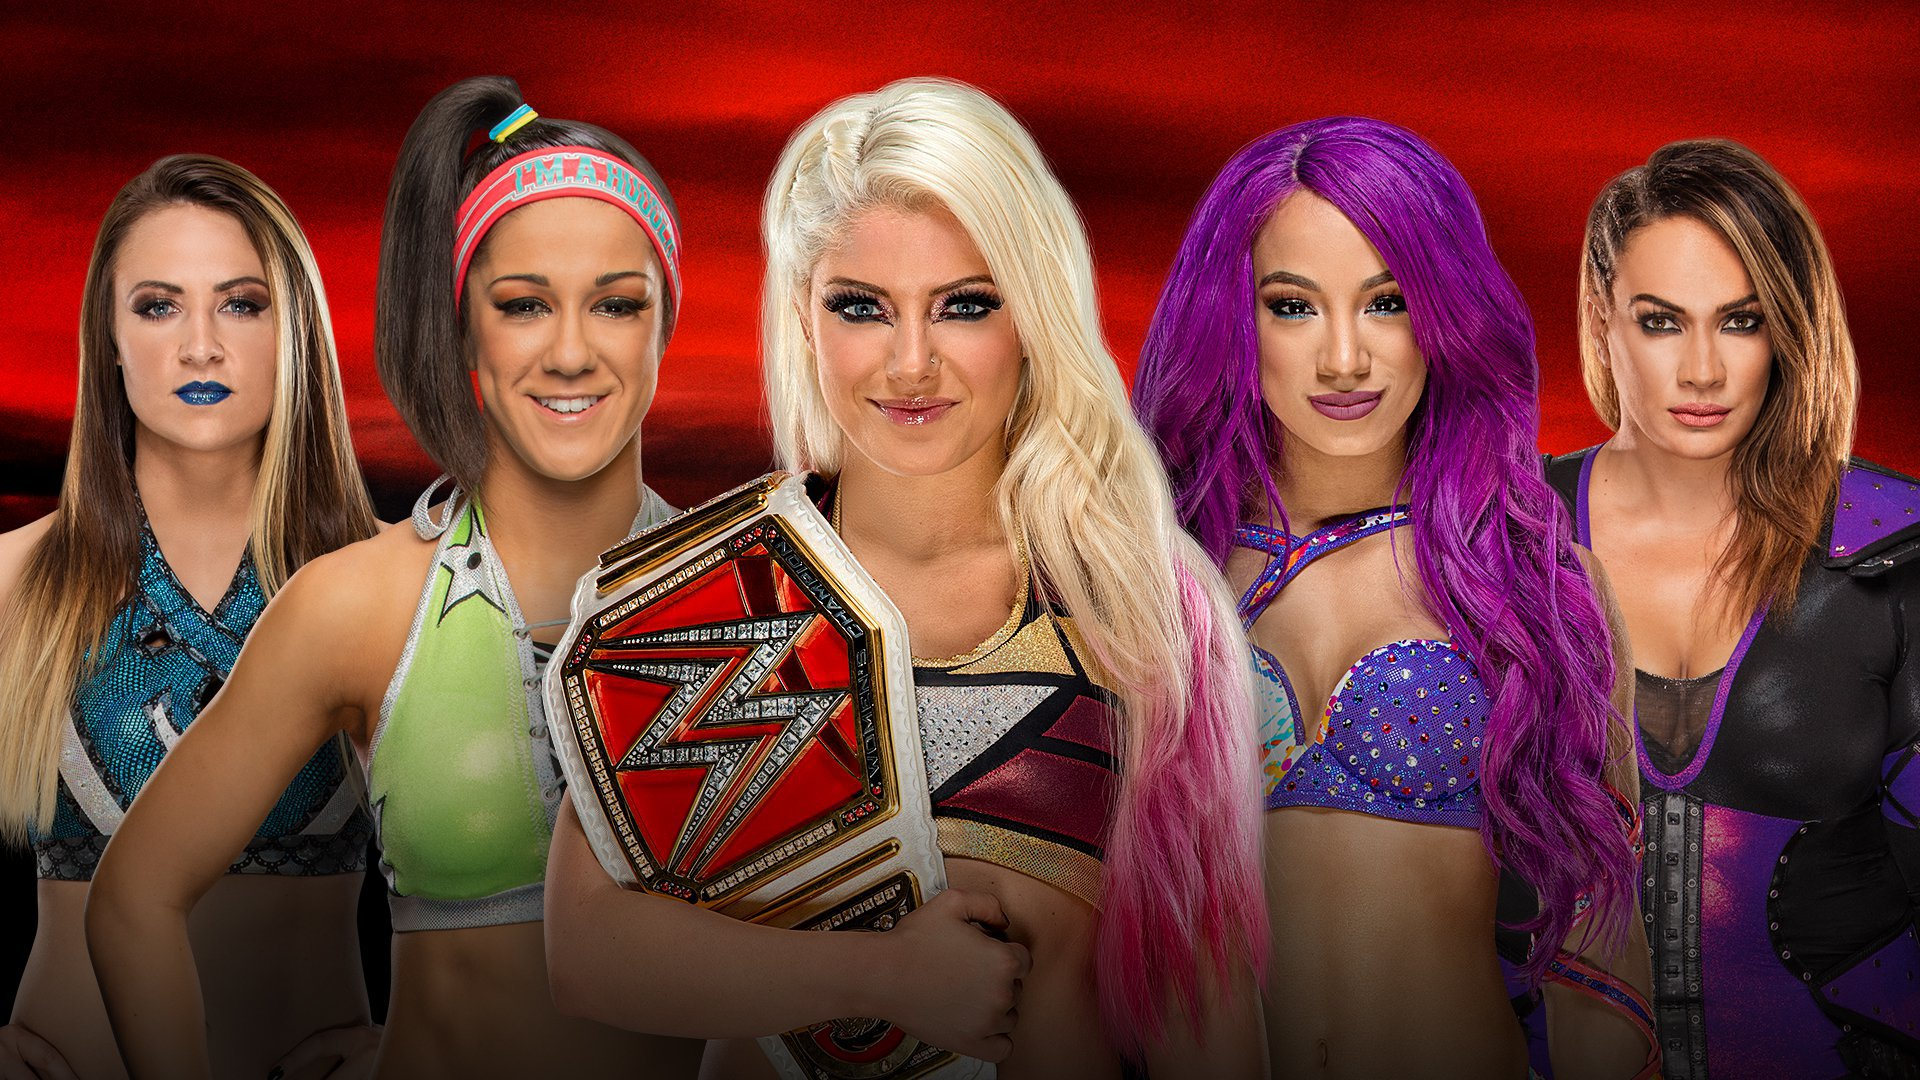 WWE No Mercy 2017: Emma vs. Bayley vs. Alexa Bliss vs. Sasha Banks vs. Nia Jax